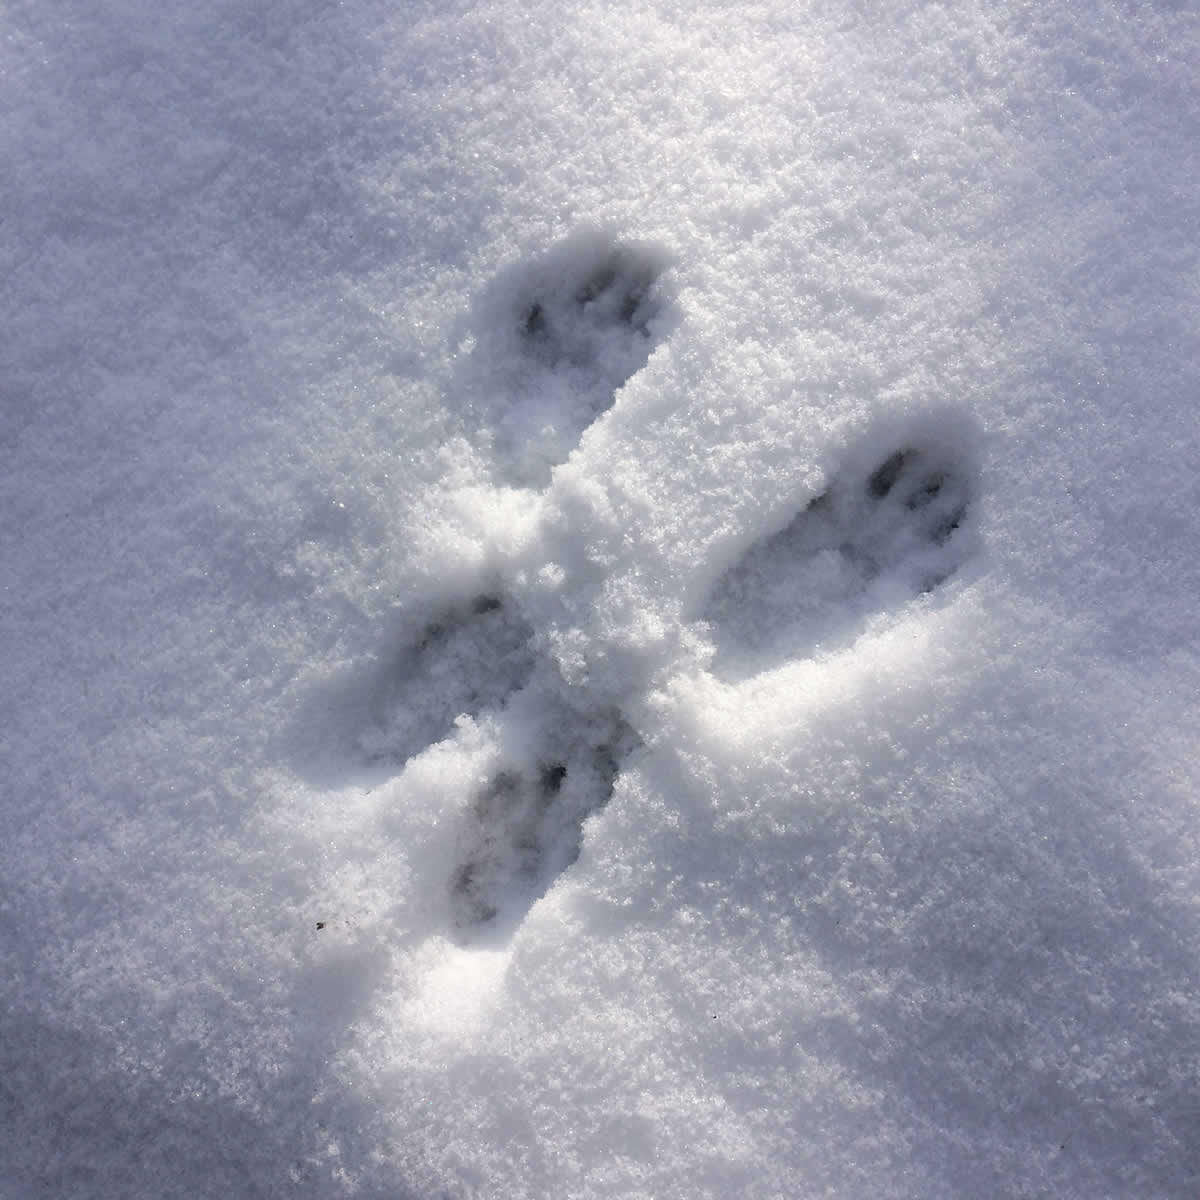 Wild animal foot prints in snow in Zagori, Vikos-Aoos Geopark